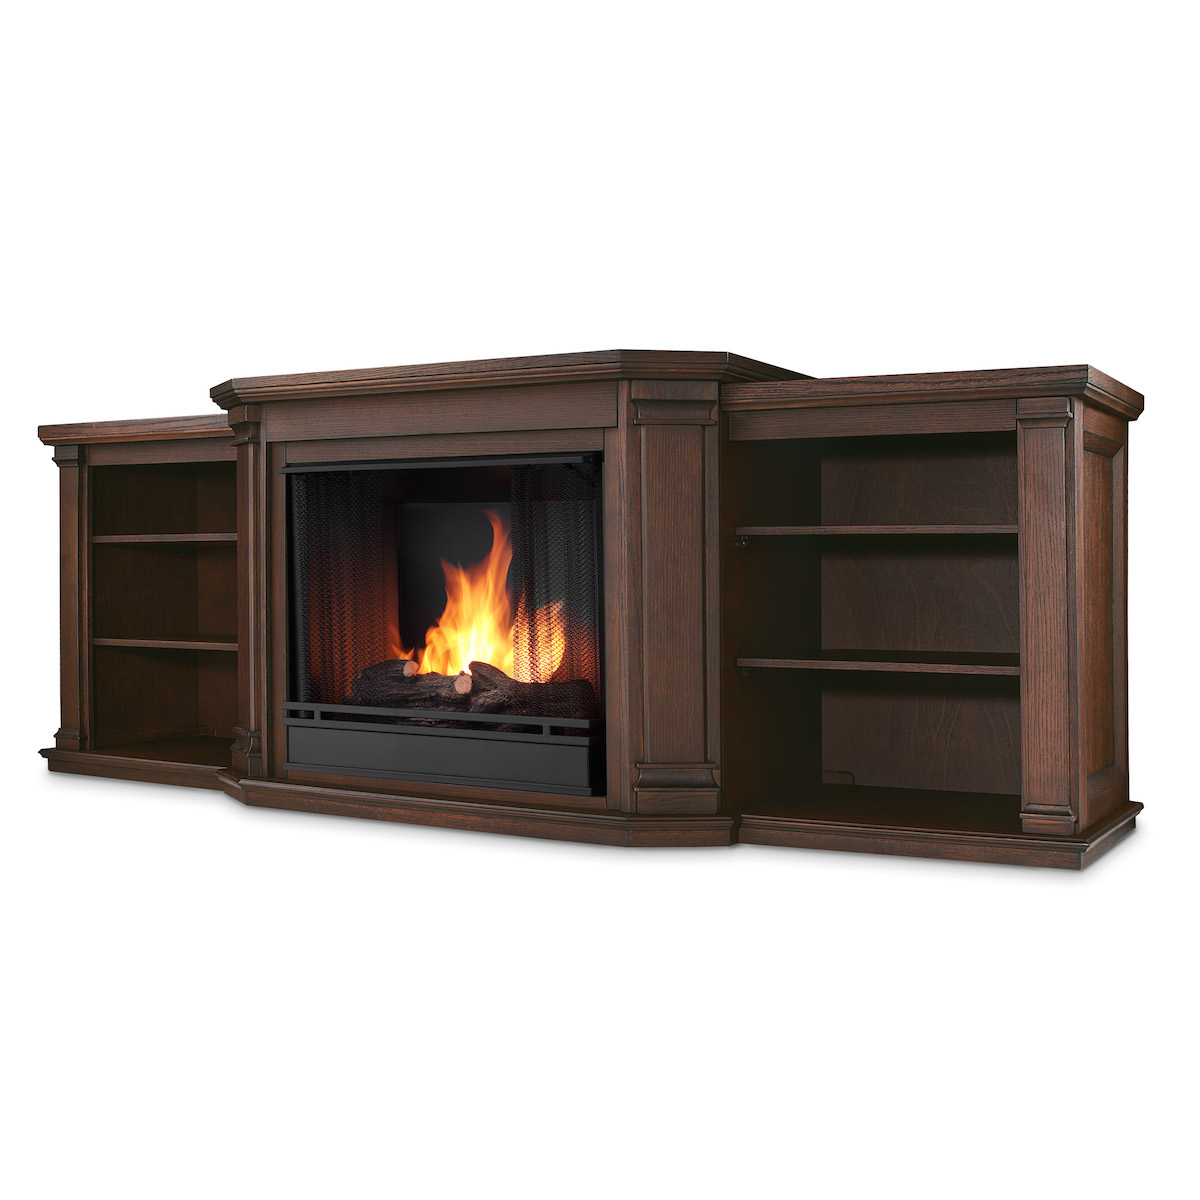 Real Flame Valmont Entertainment Center Ventless Gel Fireplace In Chestnut Oak